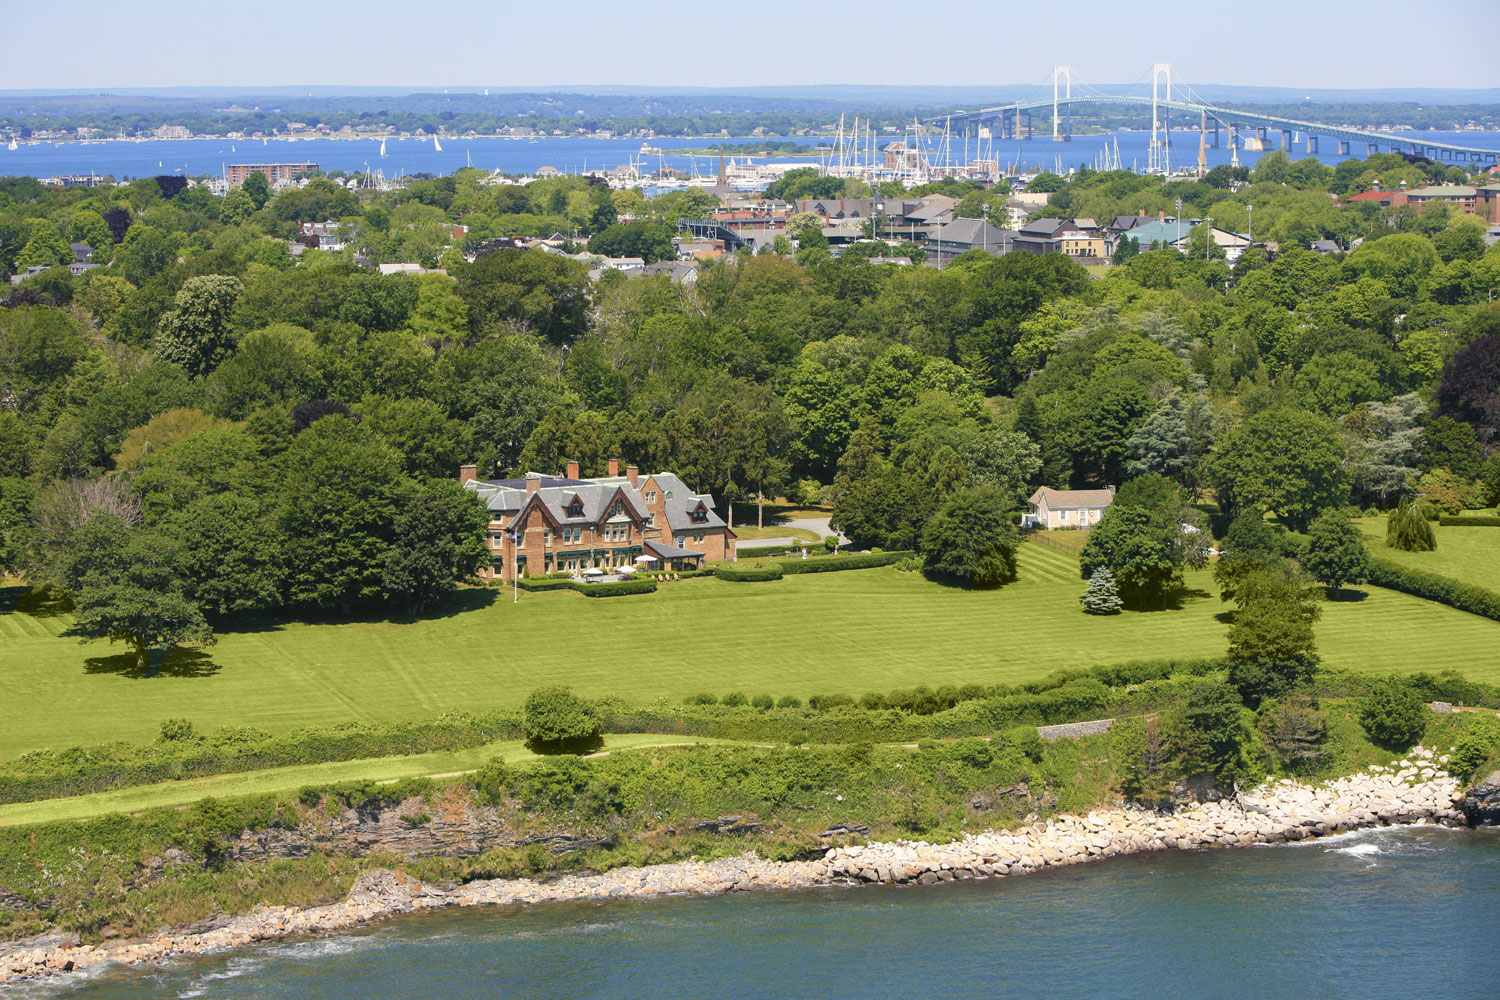 Ocean Lawn is sited on 6.70 acres of glorious grounds with 515 feet of frontage on the Atlantic Ocean.